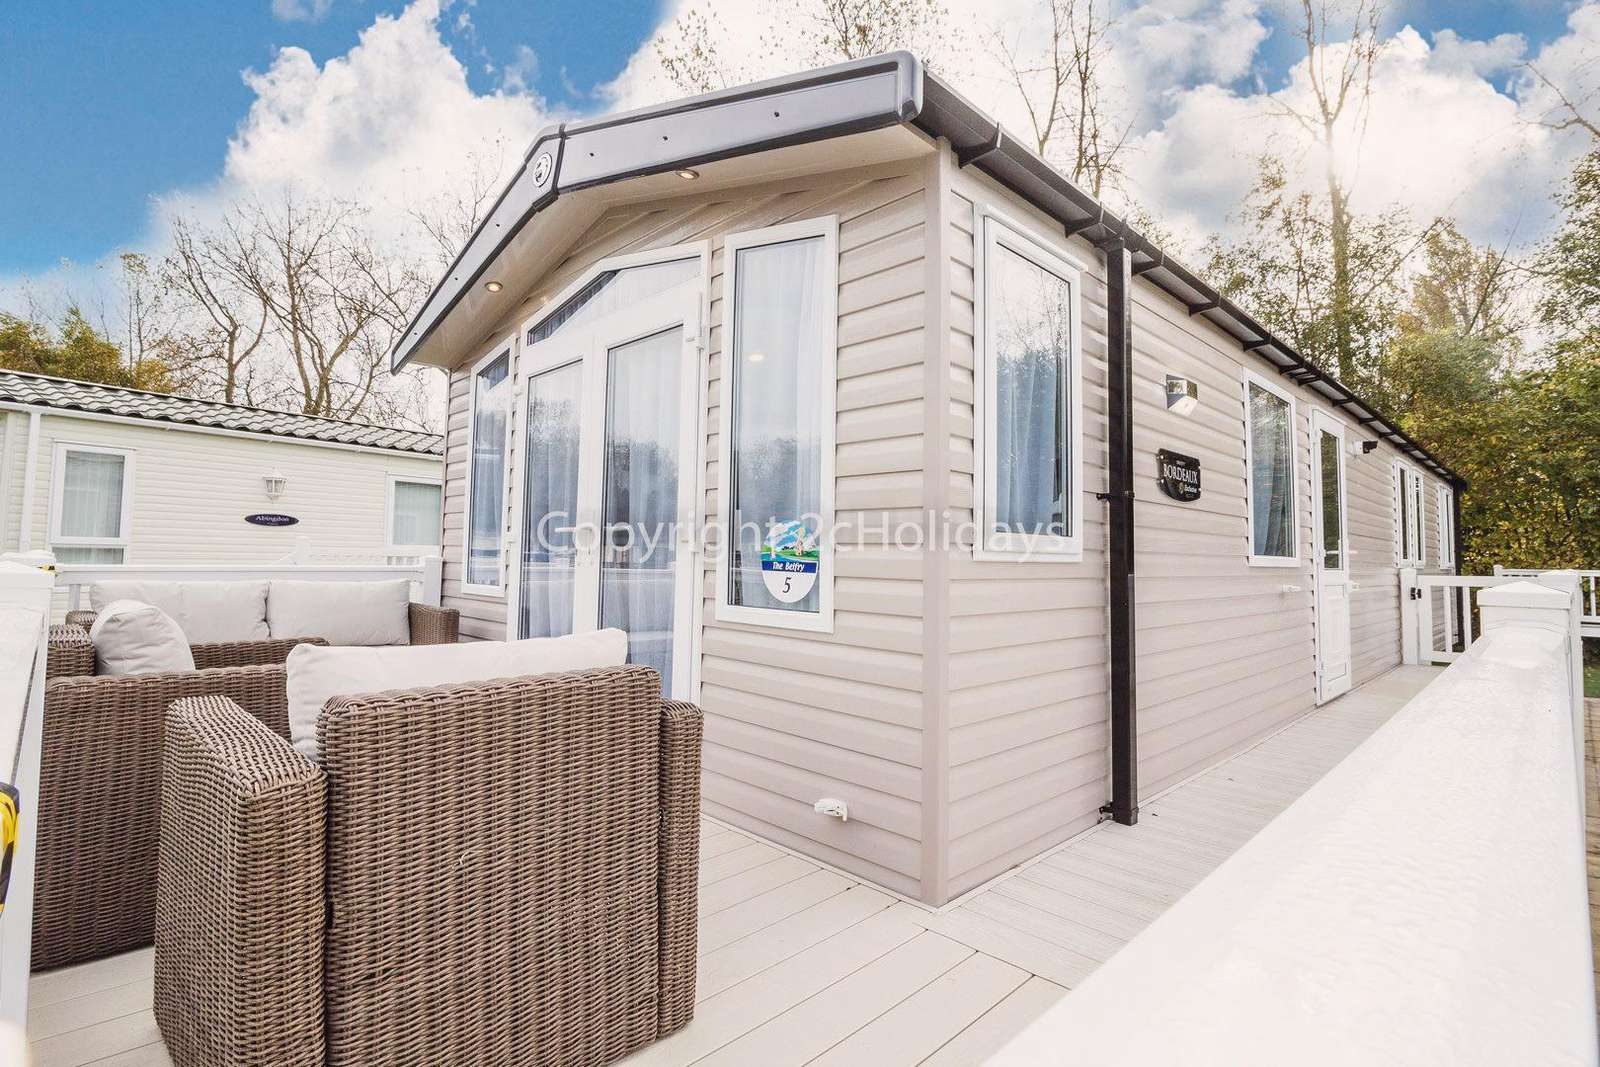 Caravan for hire with decking at Hopton